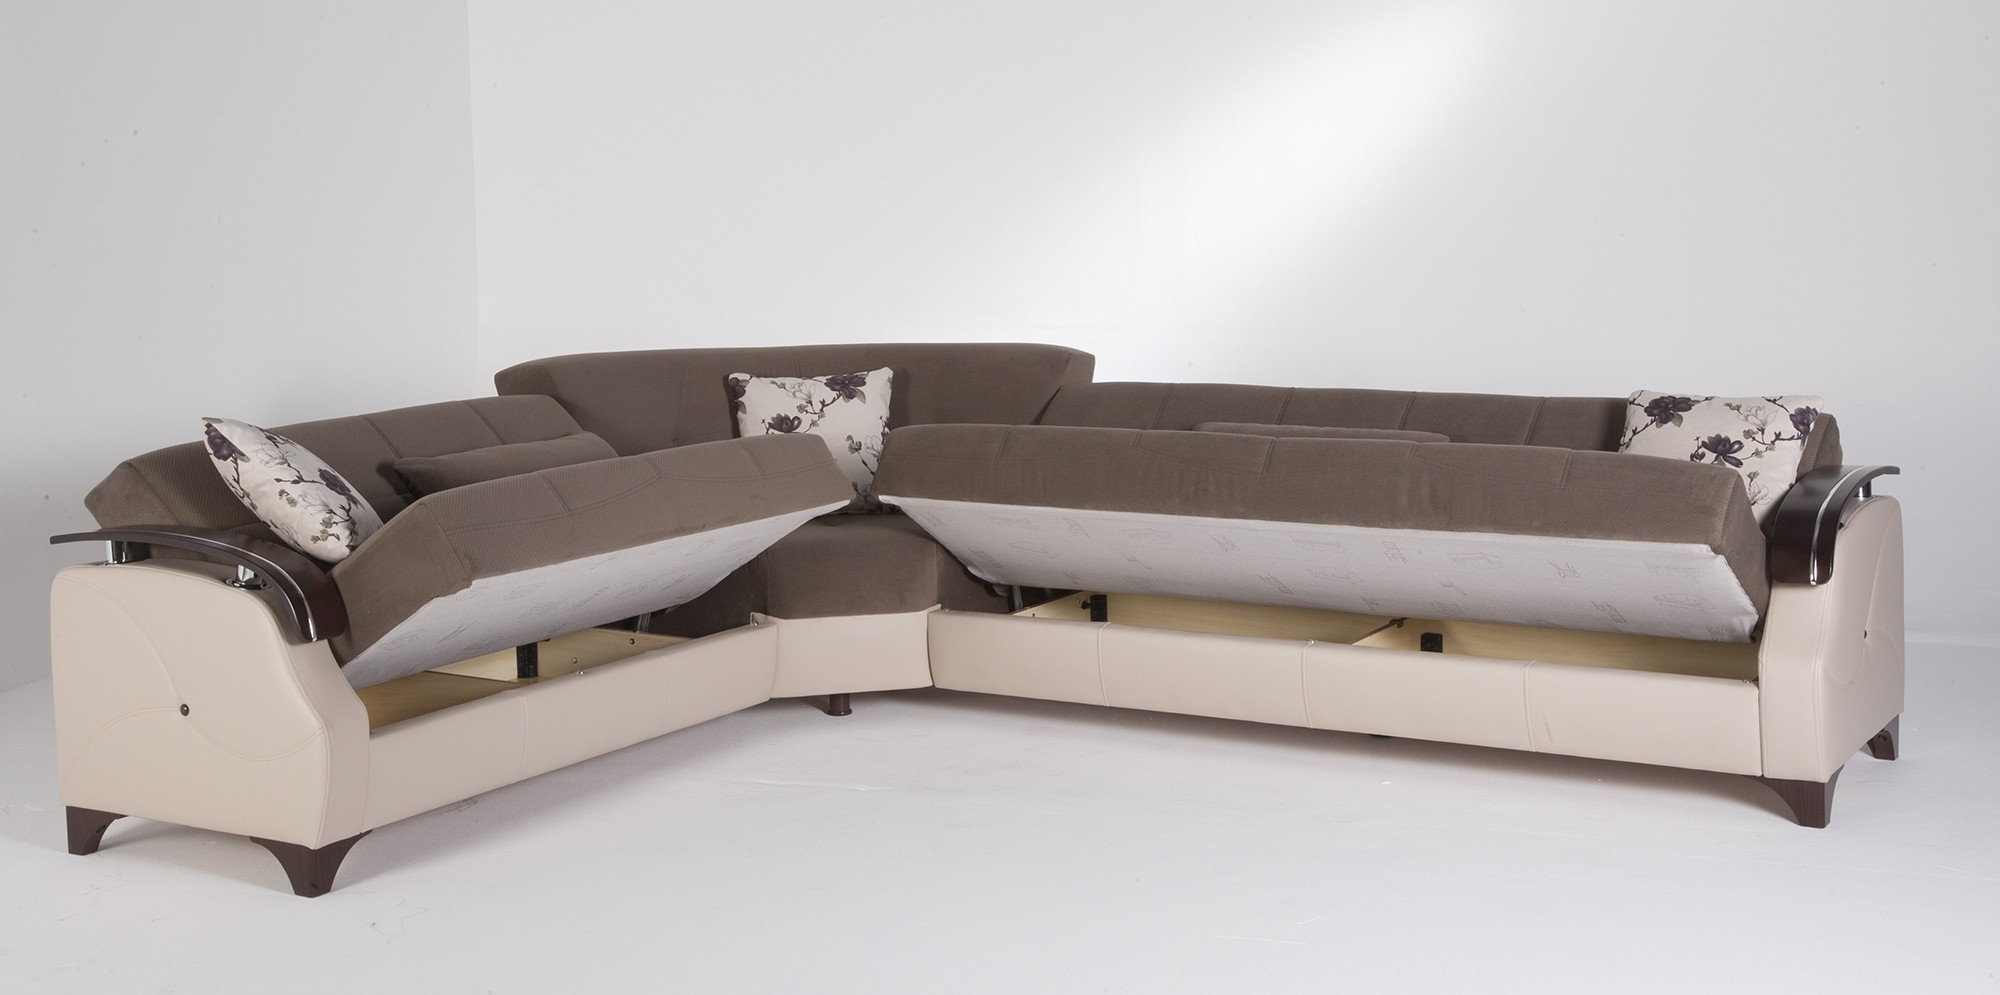 Sectional Sleeper Sofa With Storage Intended For Most Popular Sleeper Sofas With Chaise And Storage (View 10 of 15)